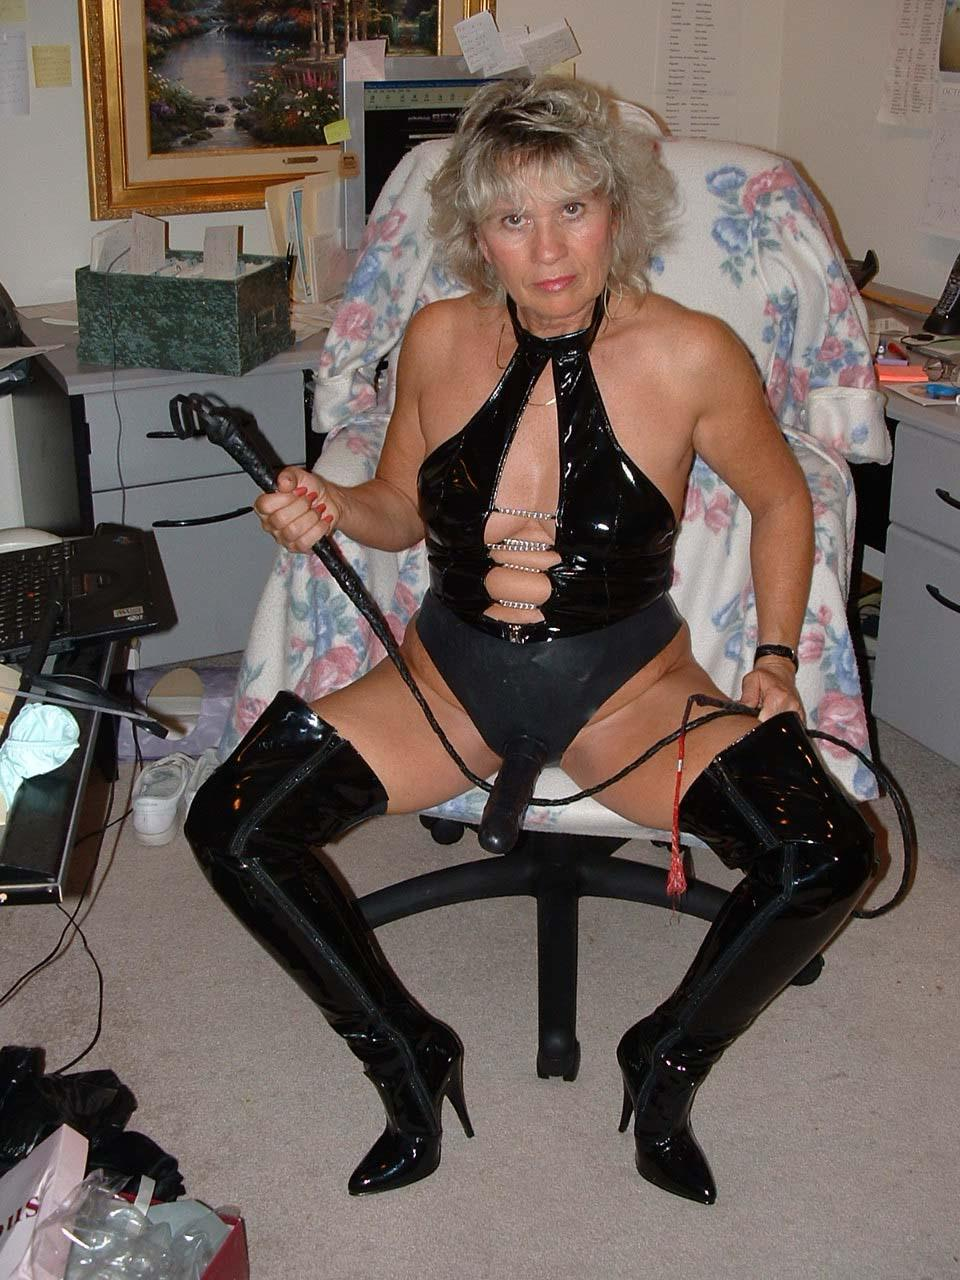 2 mistress using a slaves body 7